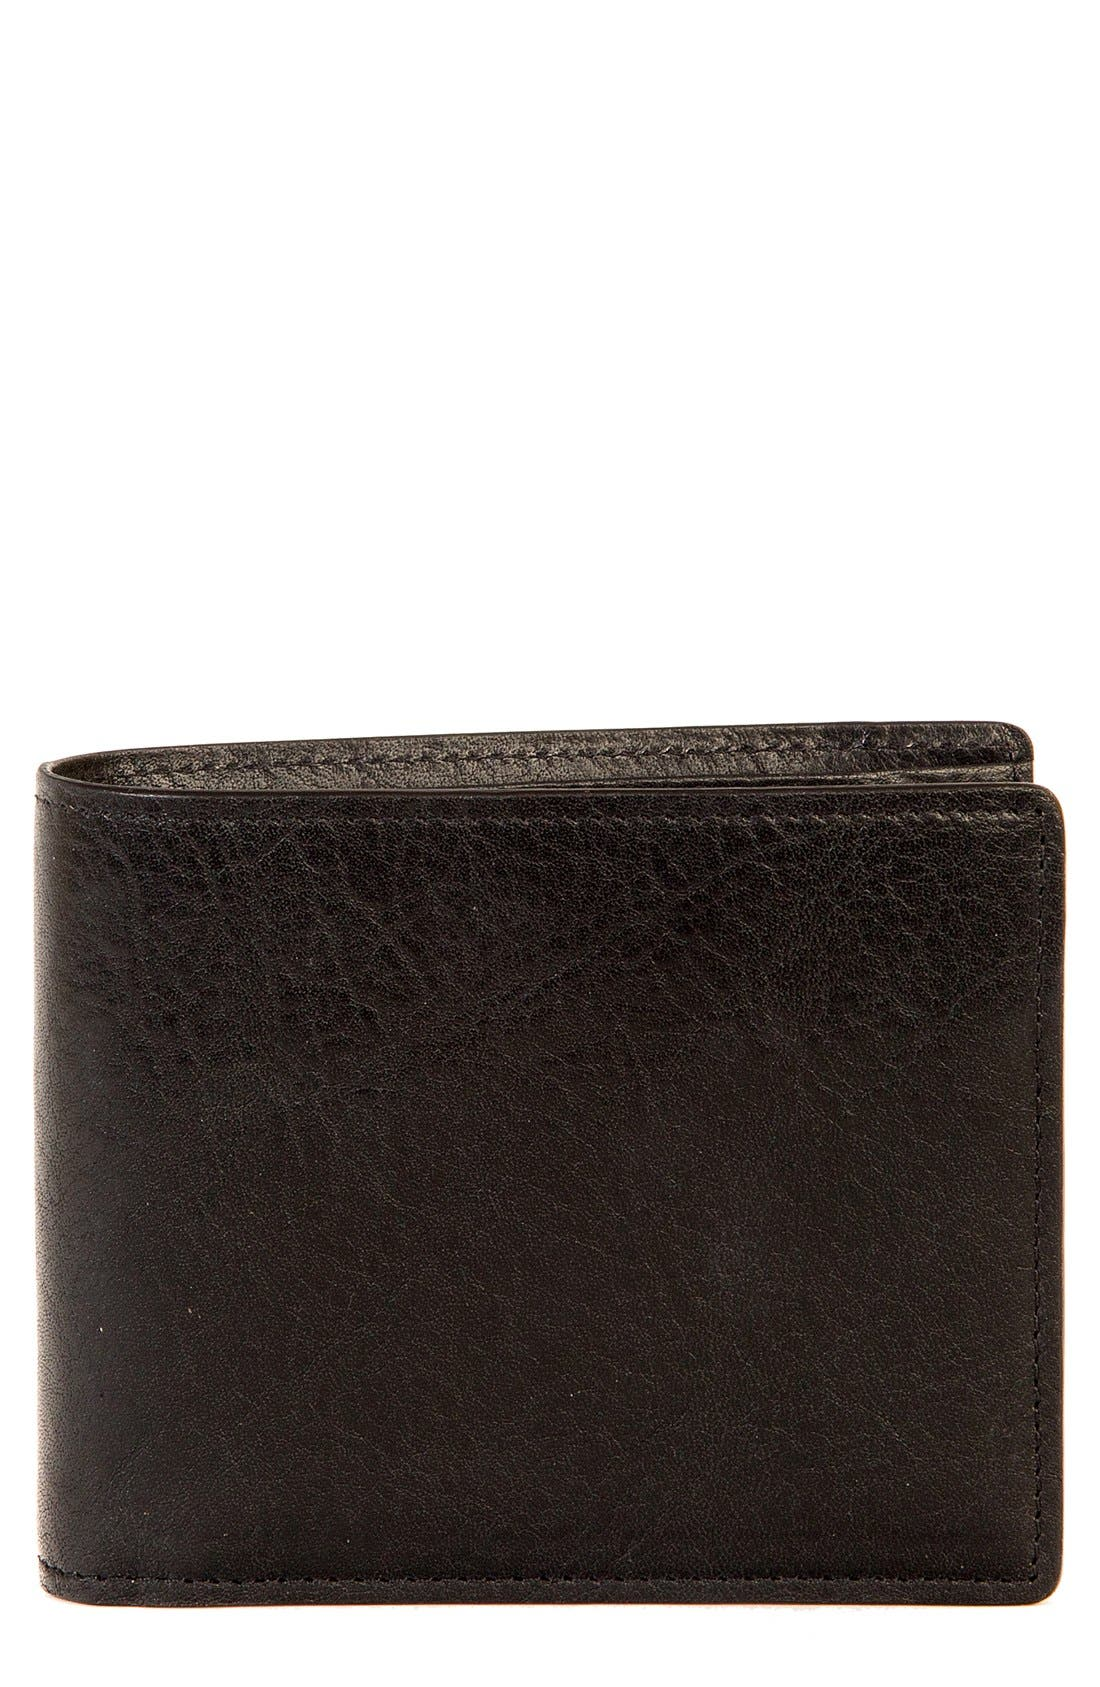 Boconi 'Becker' RFID Leather Wallet